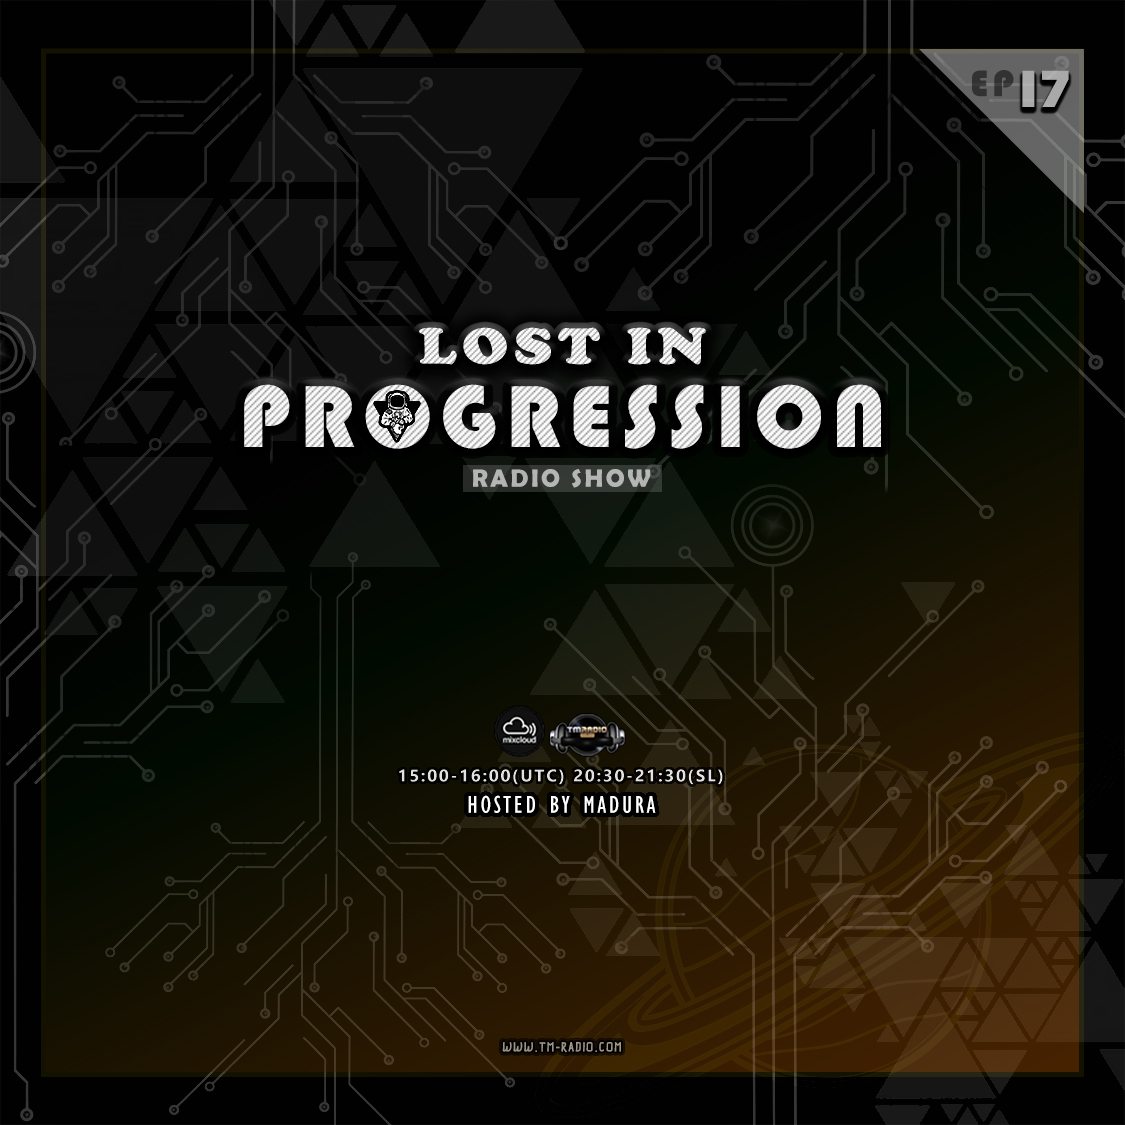 Lost in Progression :: Lost in progression Ep17 (aired on September 11th, 2020) banner logo